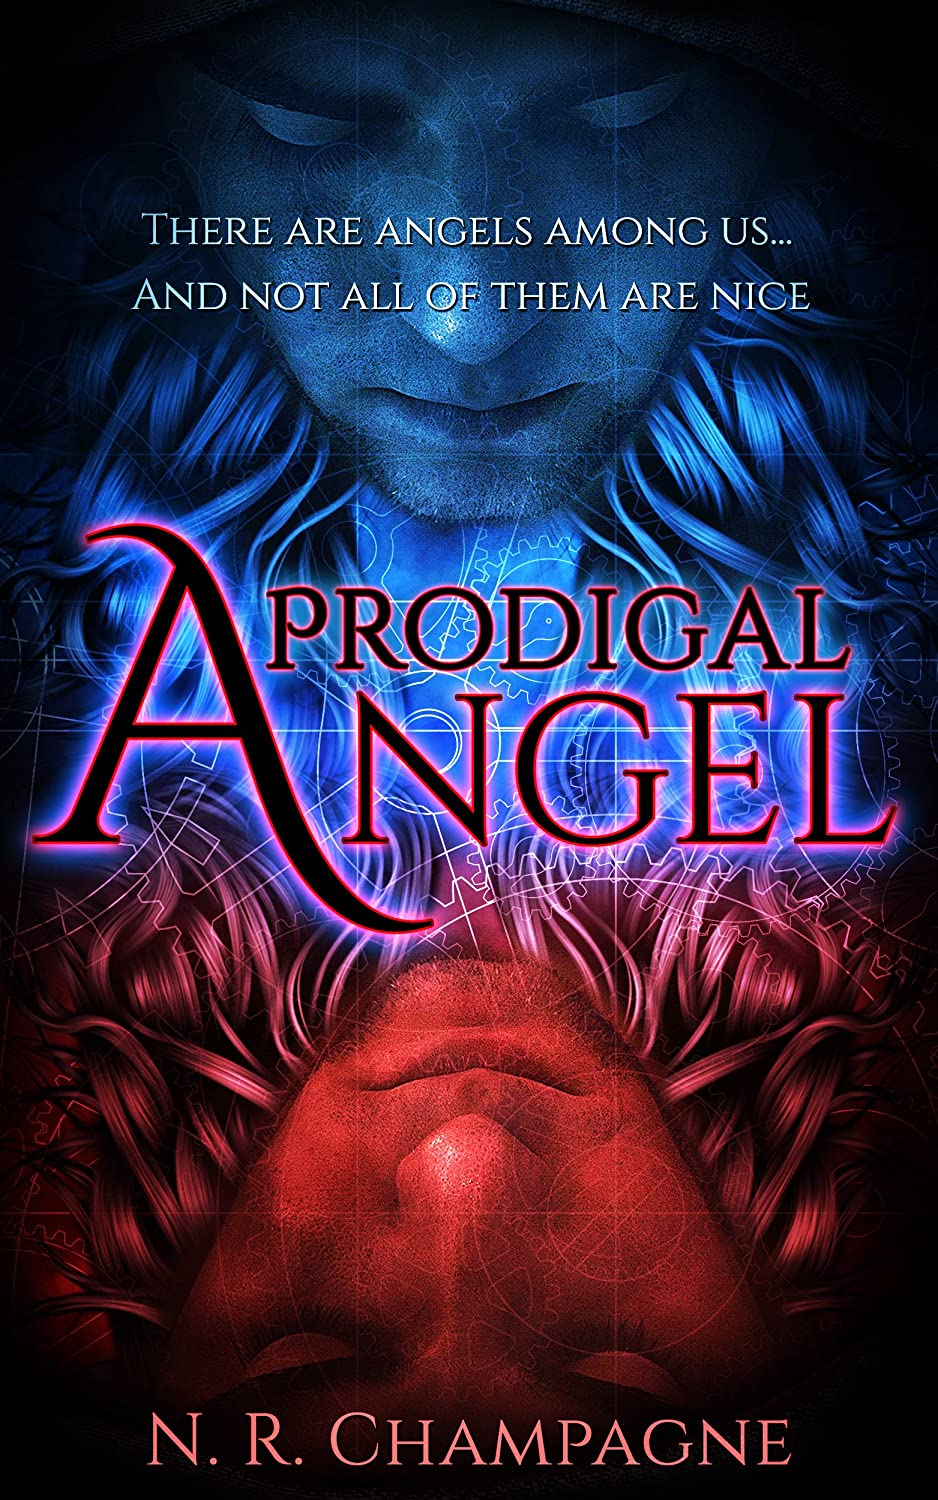 Prodigal Angel (The Watchers Book 1) by N. R. Champagne